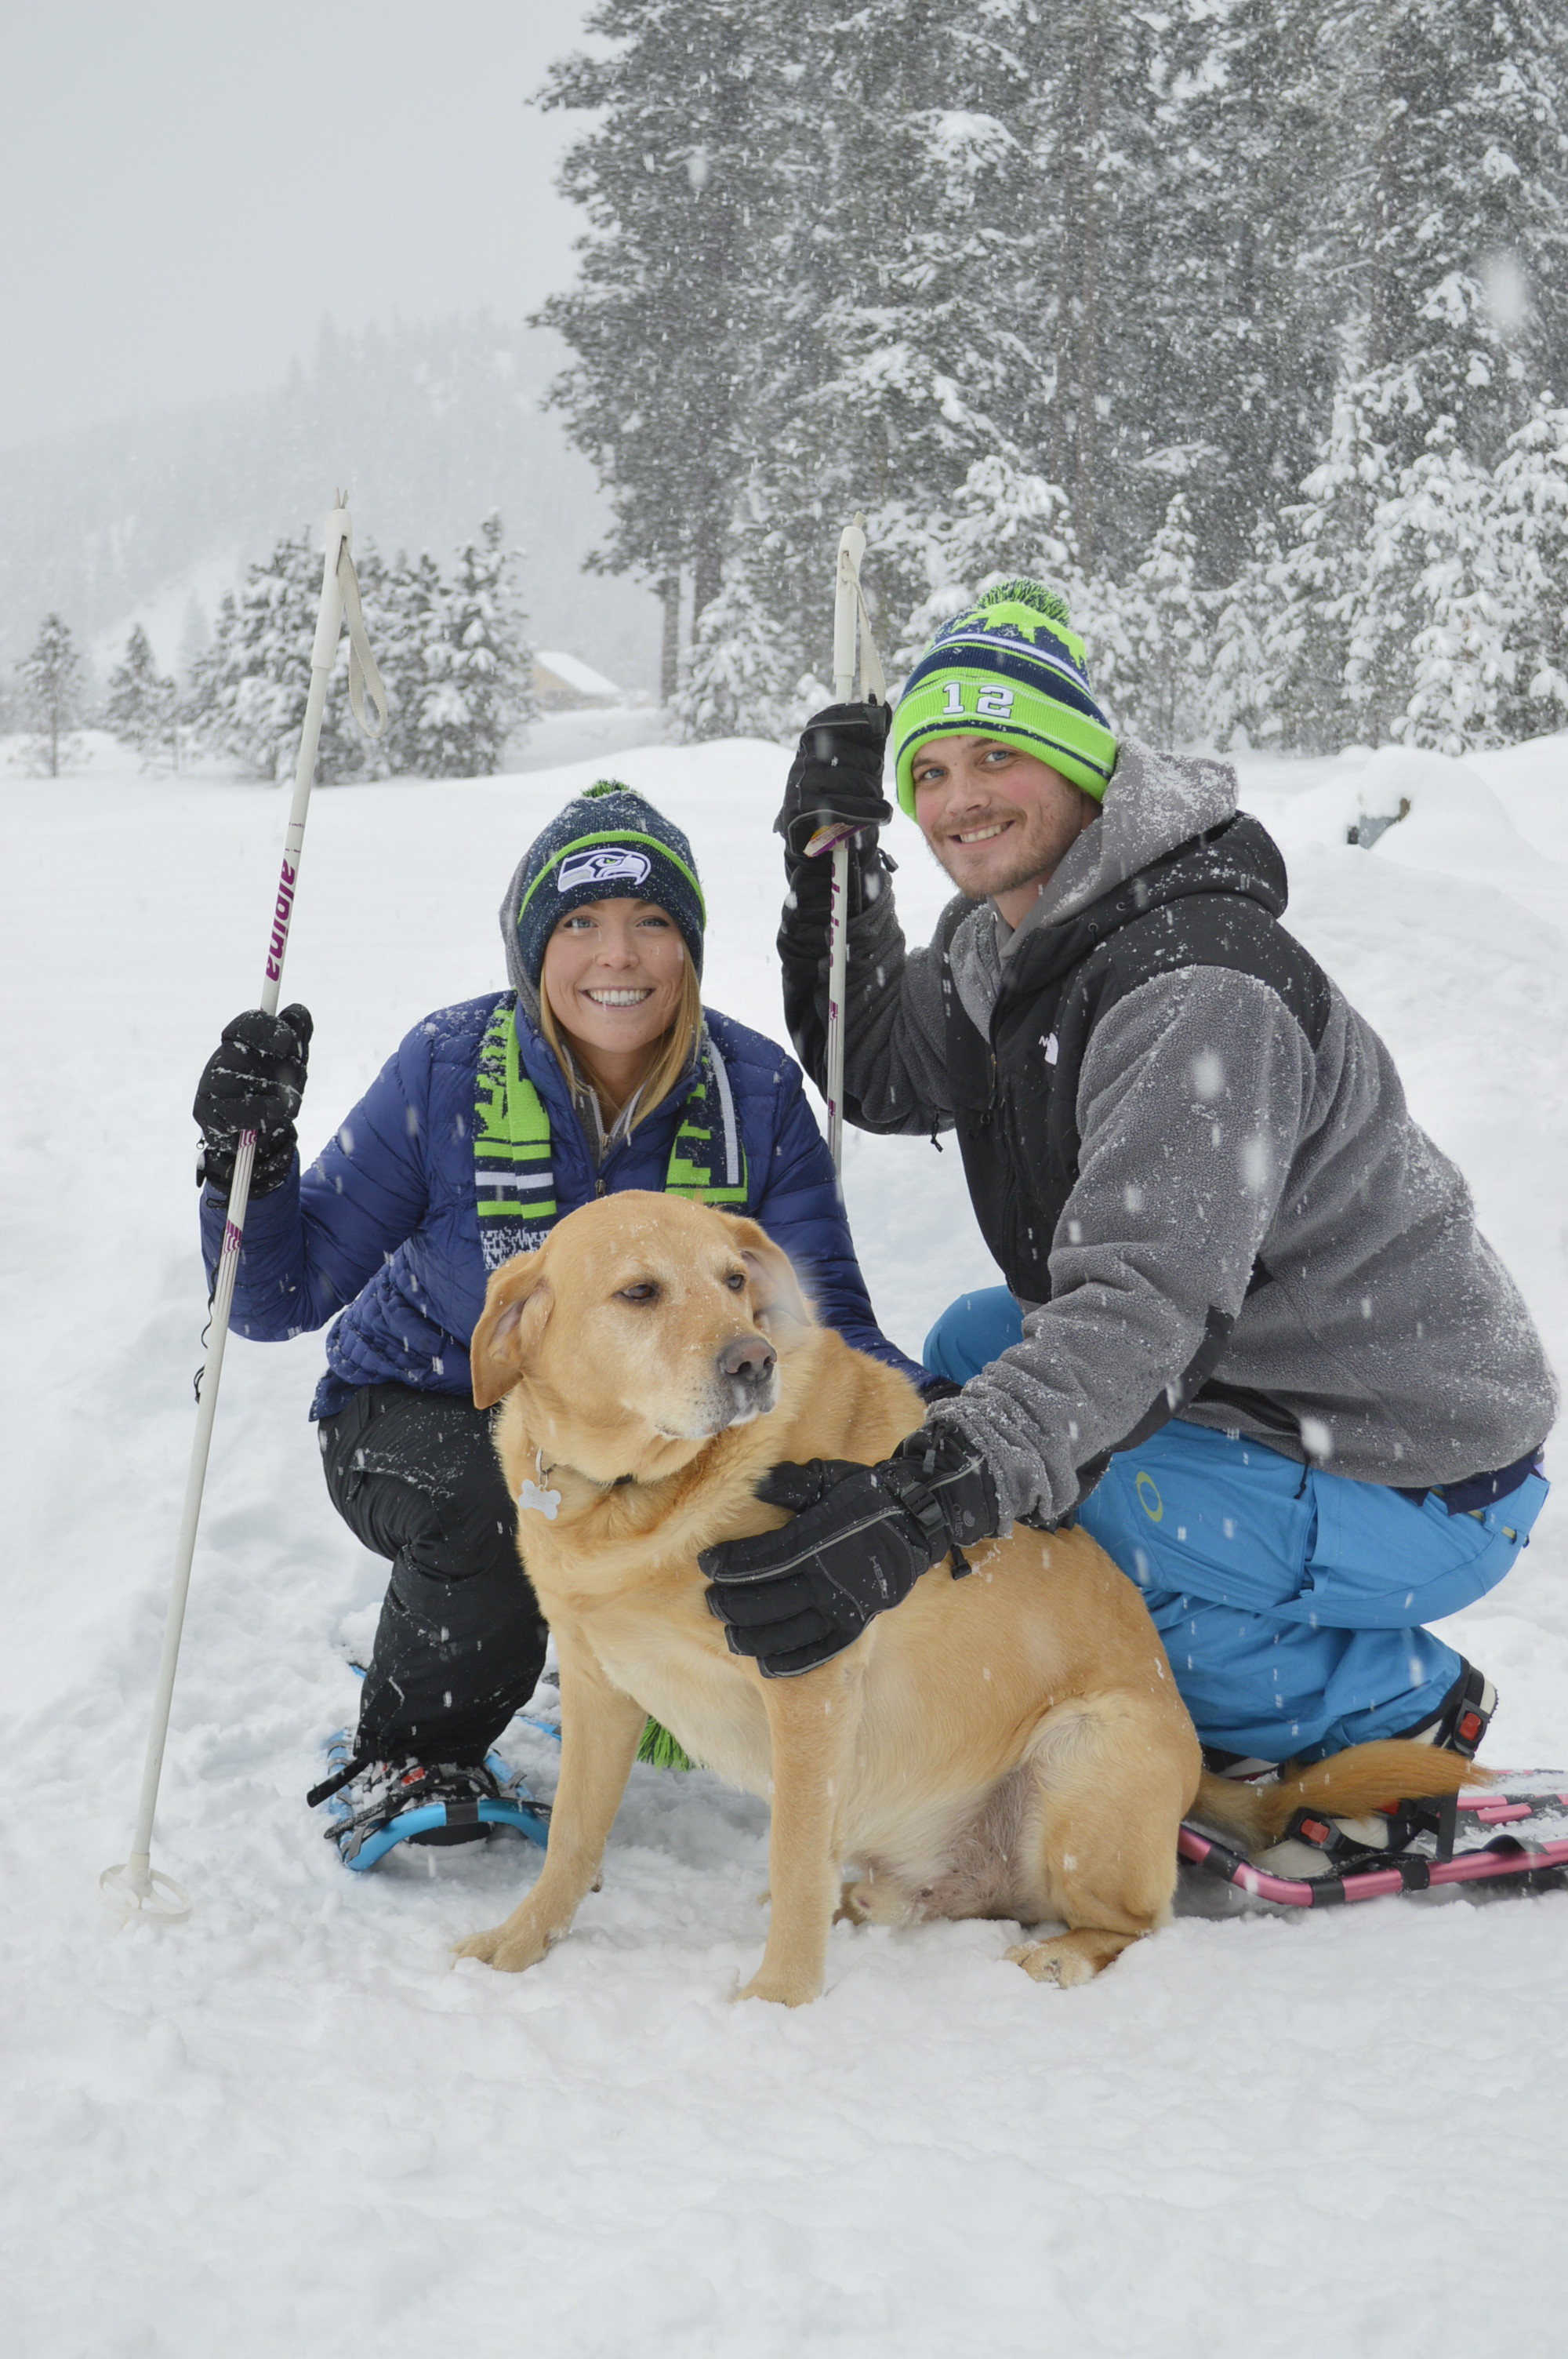 Jessica, Dane, (and Oakley) trying out the snow shoes...